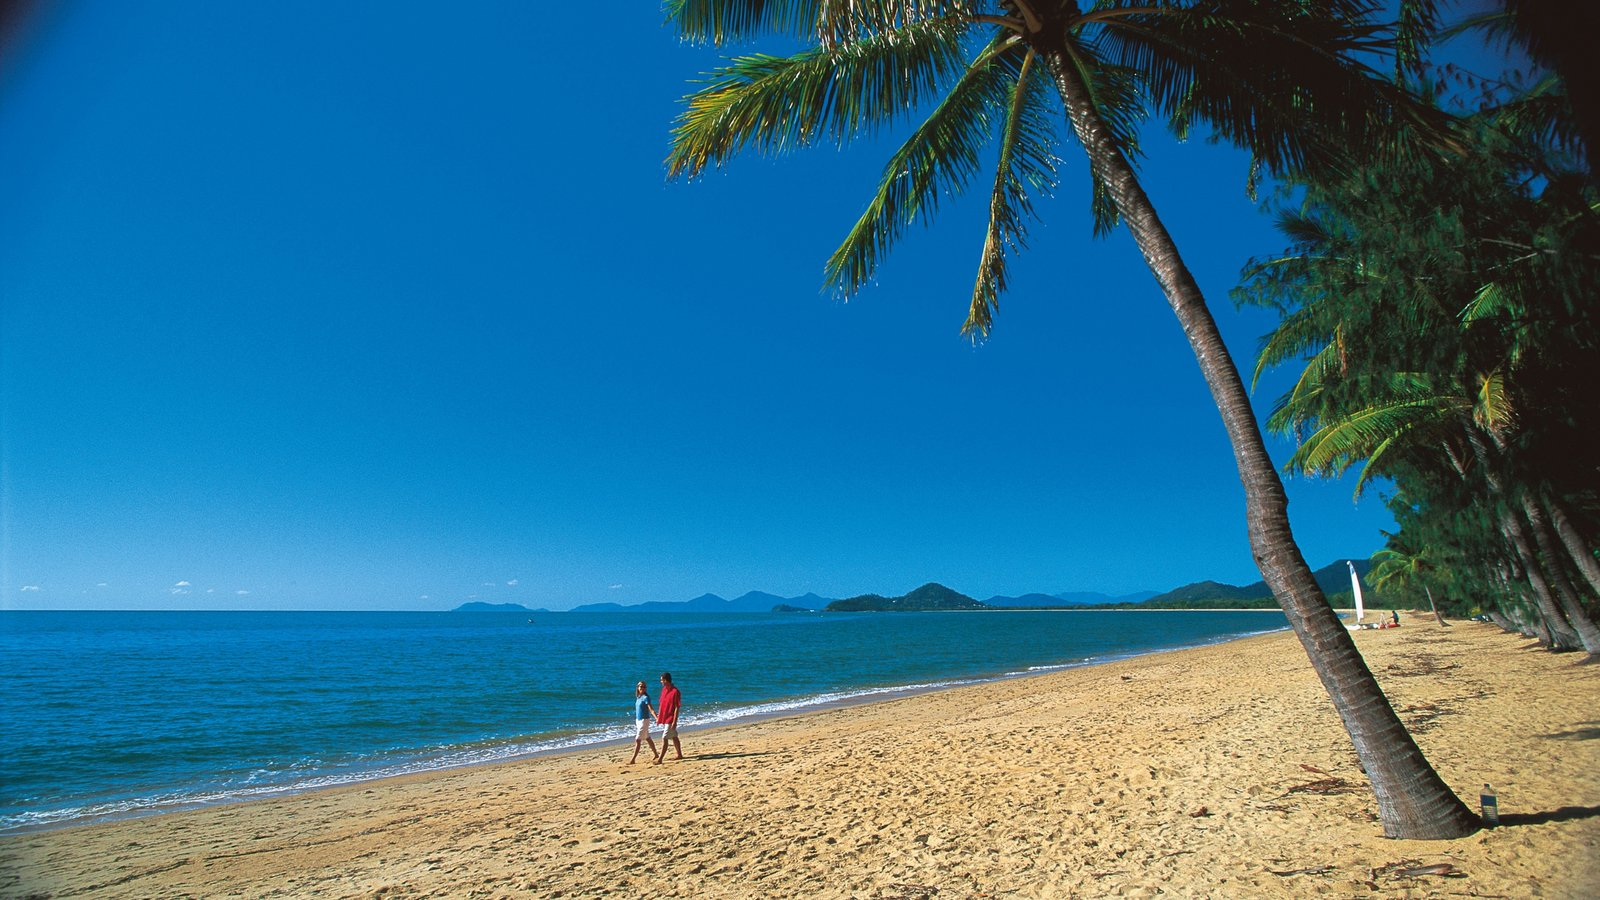 Palm Cove featuring tropical scenes, a sandy beach and landscape views